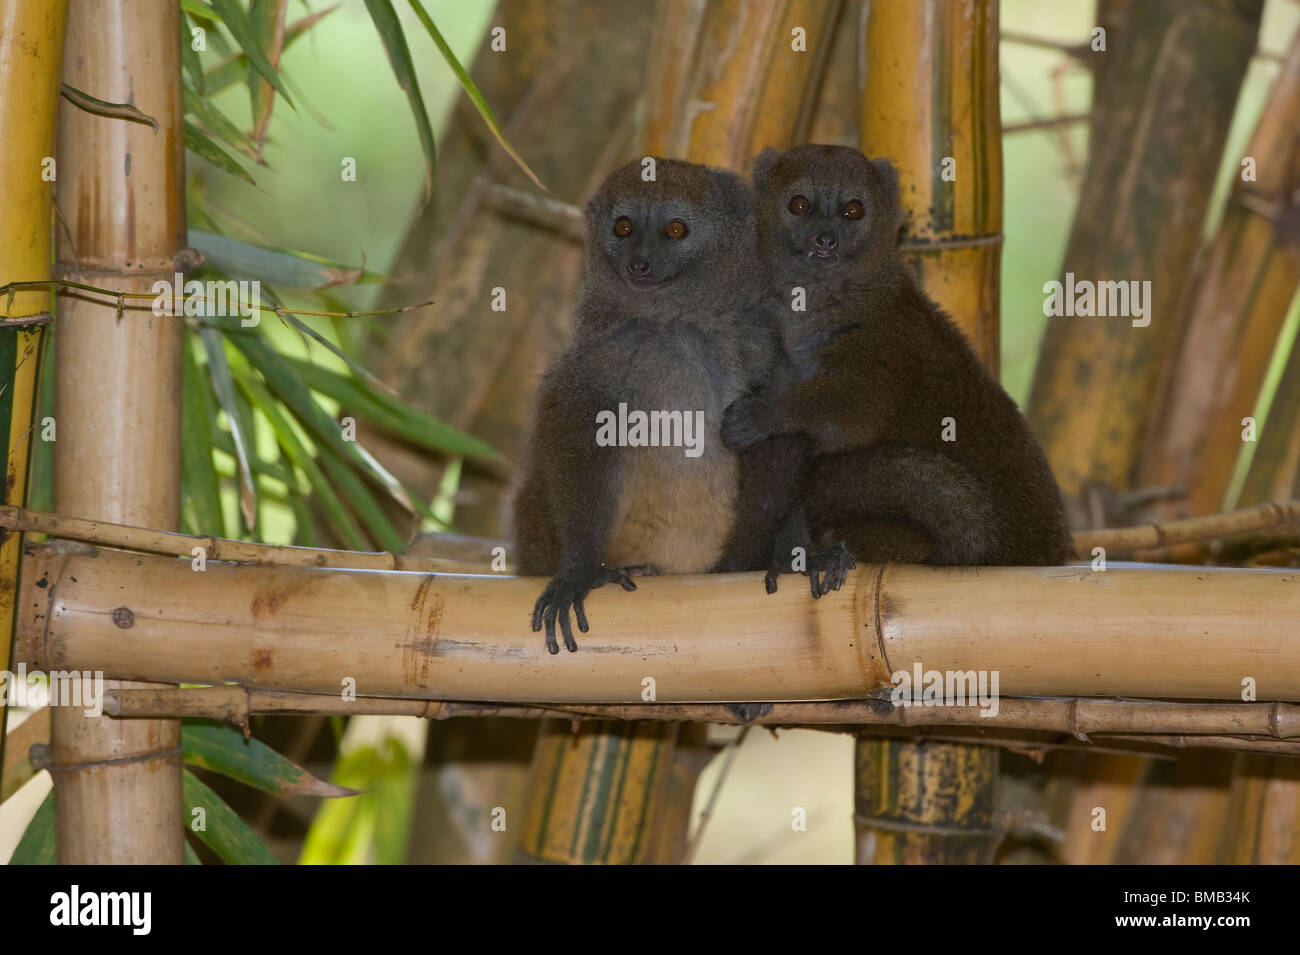 Eastern Lesser Bamboo Lemur also known as Gray Bamboo Lemur or Gray Gentle Lemur (Hapalemur griseus), Madagascar - Stock Image